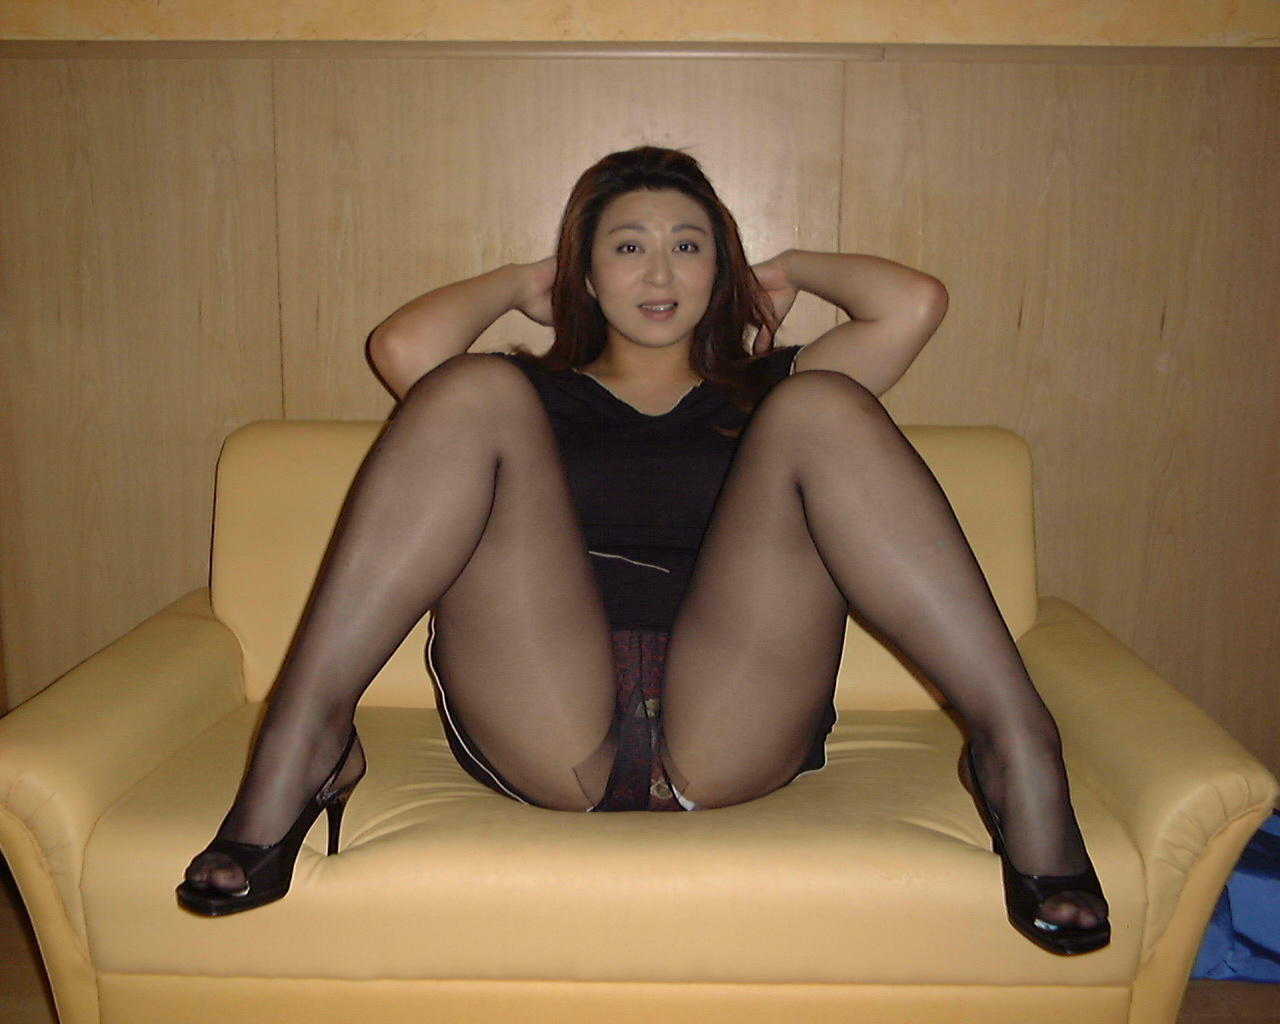 Nylons pantyhose cuties variant, yes